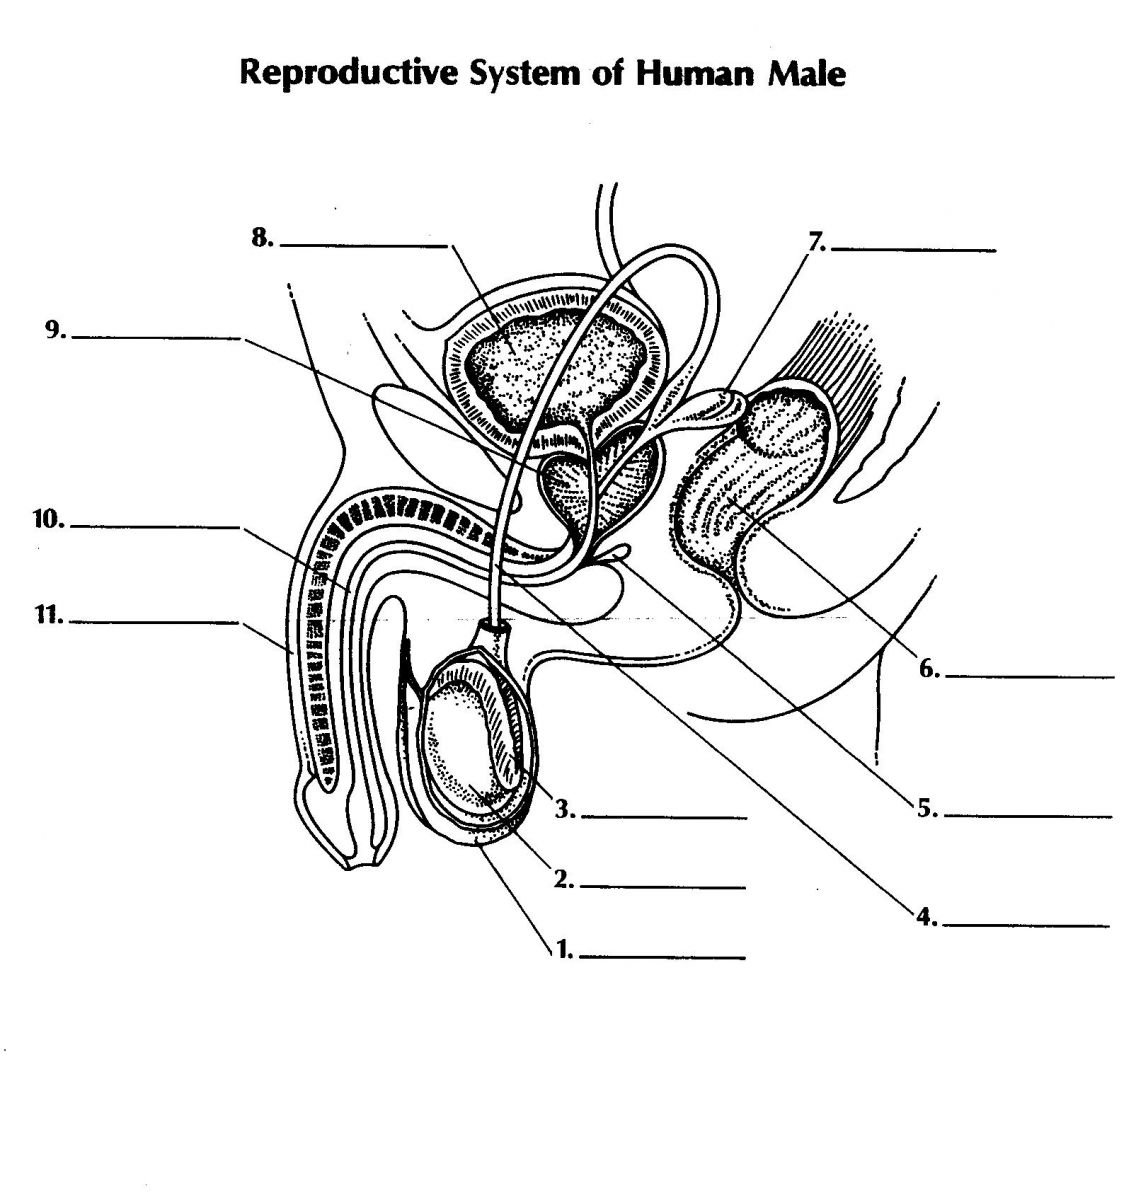 Reproductive System Of The Human Male Proprofs Quiz